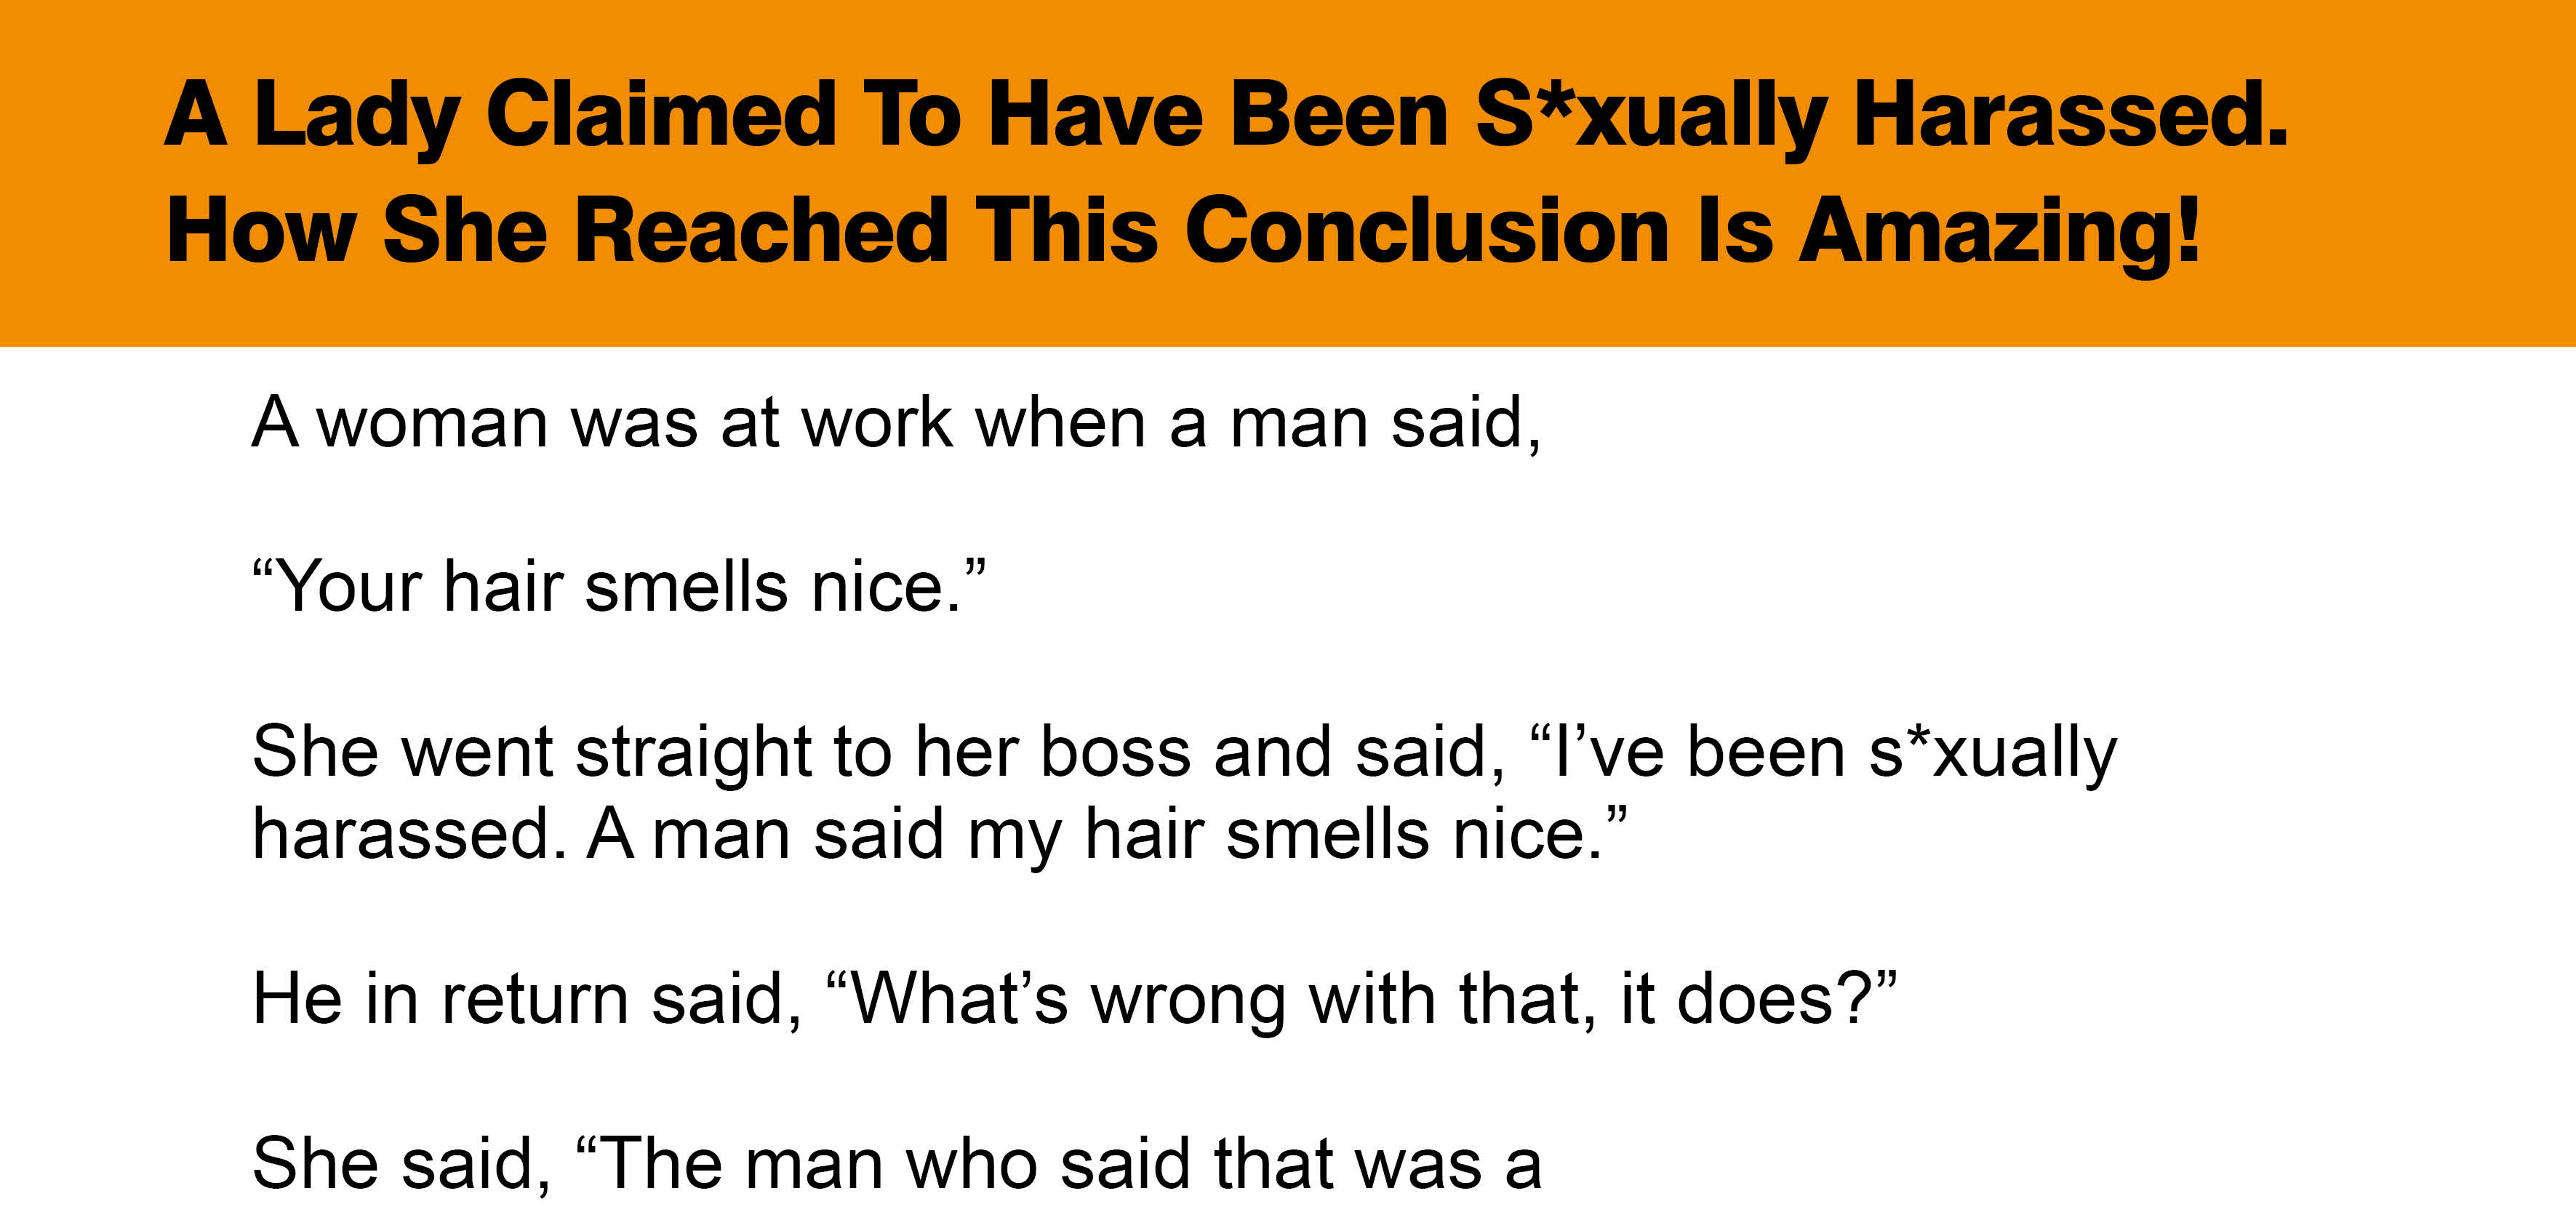 A Lady Claimed To Have Been S*xually Harassed.